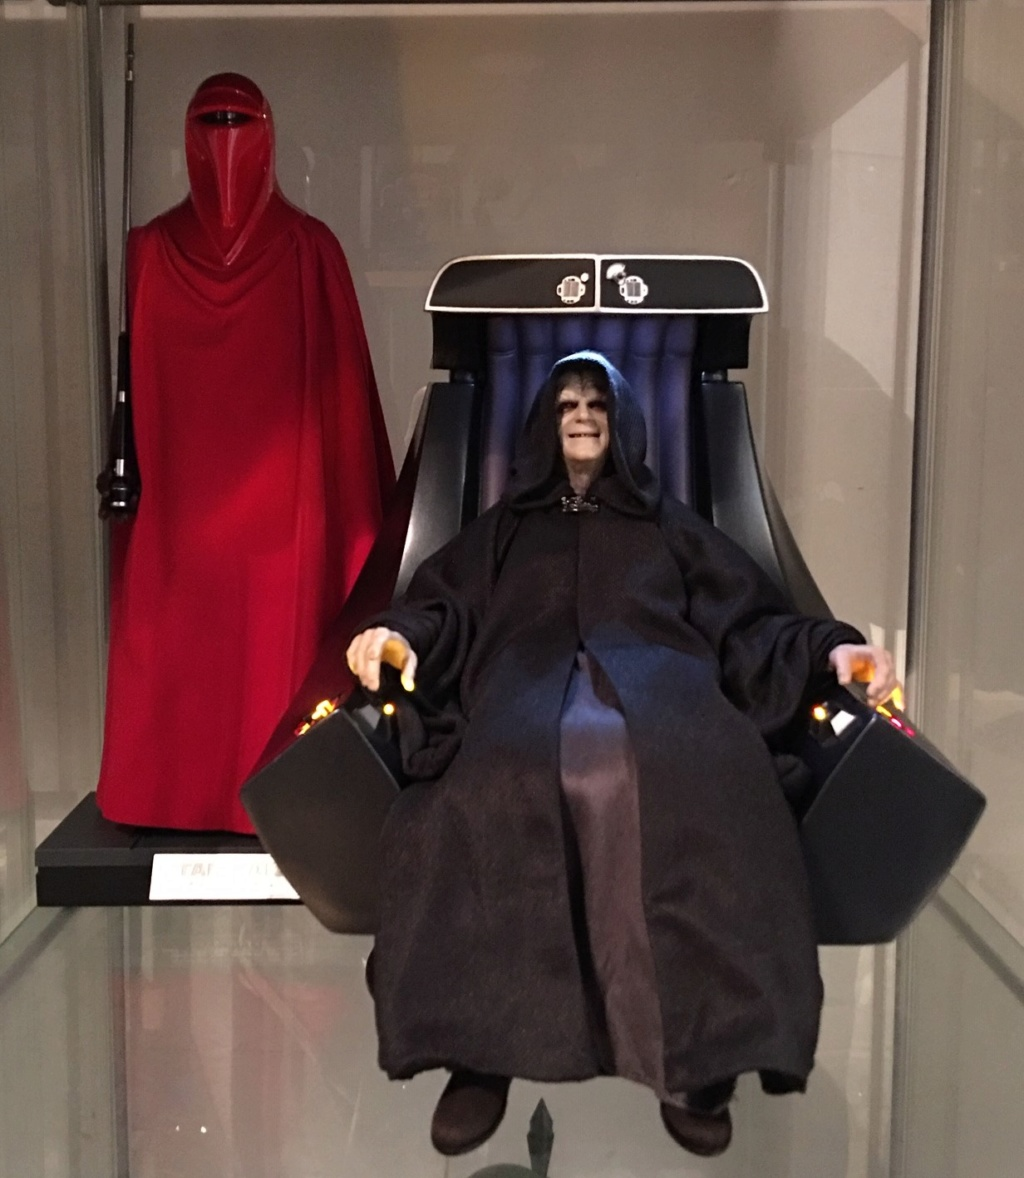 rotj - Hot Toys Star Wars Emperor Palpatine (Deluxe) Review - Page 2 Img_2412